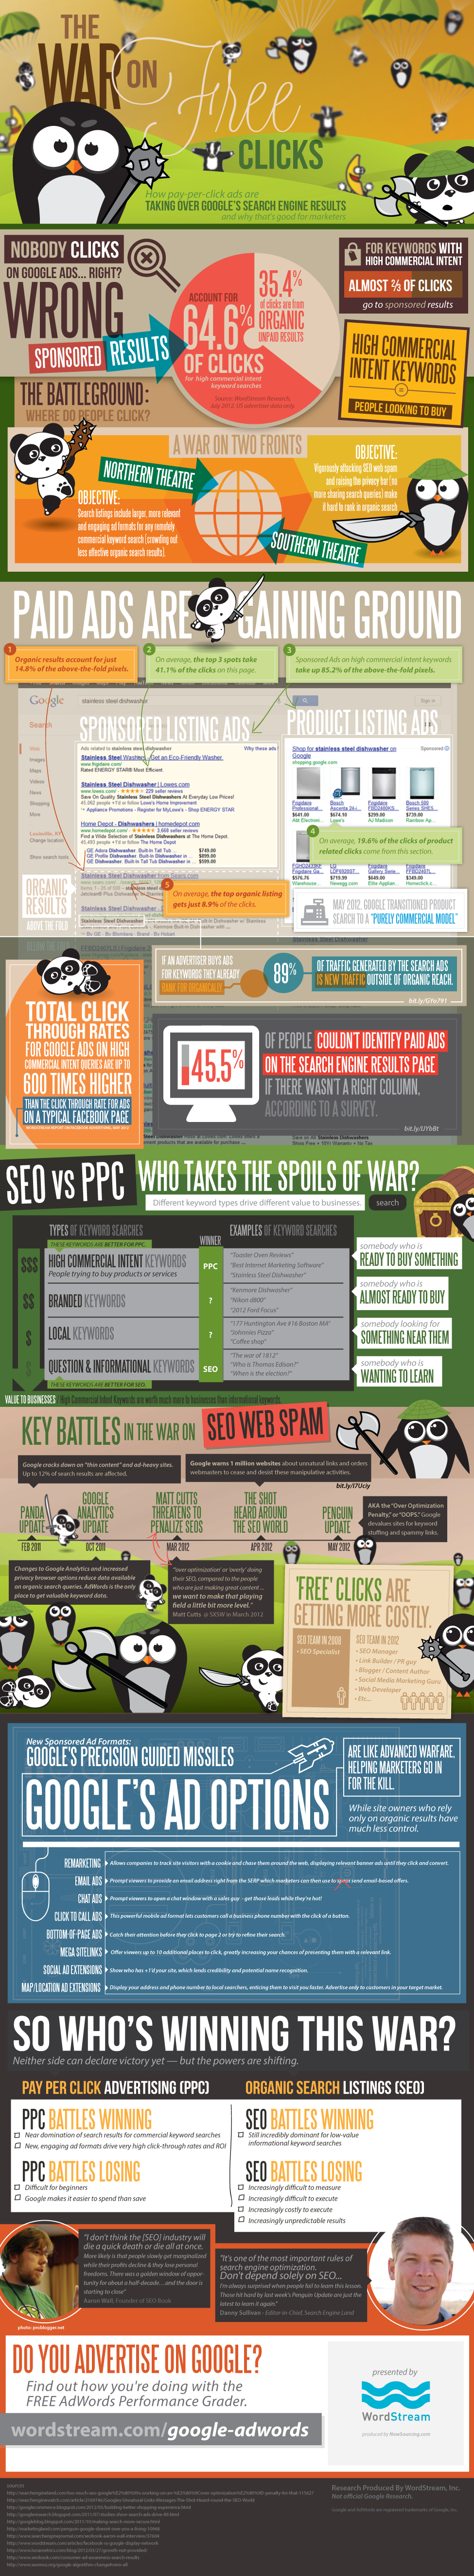 War on Free Clicks: Think Nobody Clicks Google Ads? Think Again!